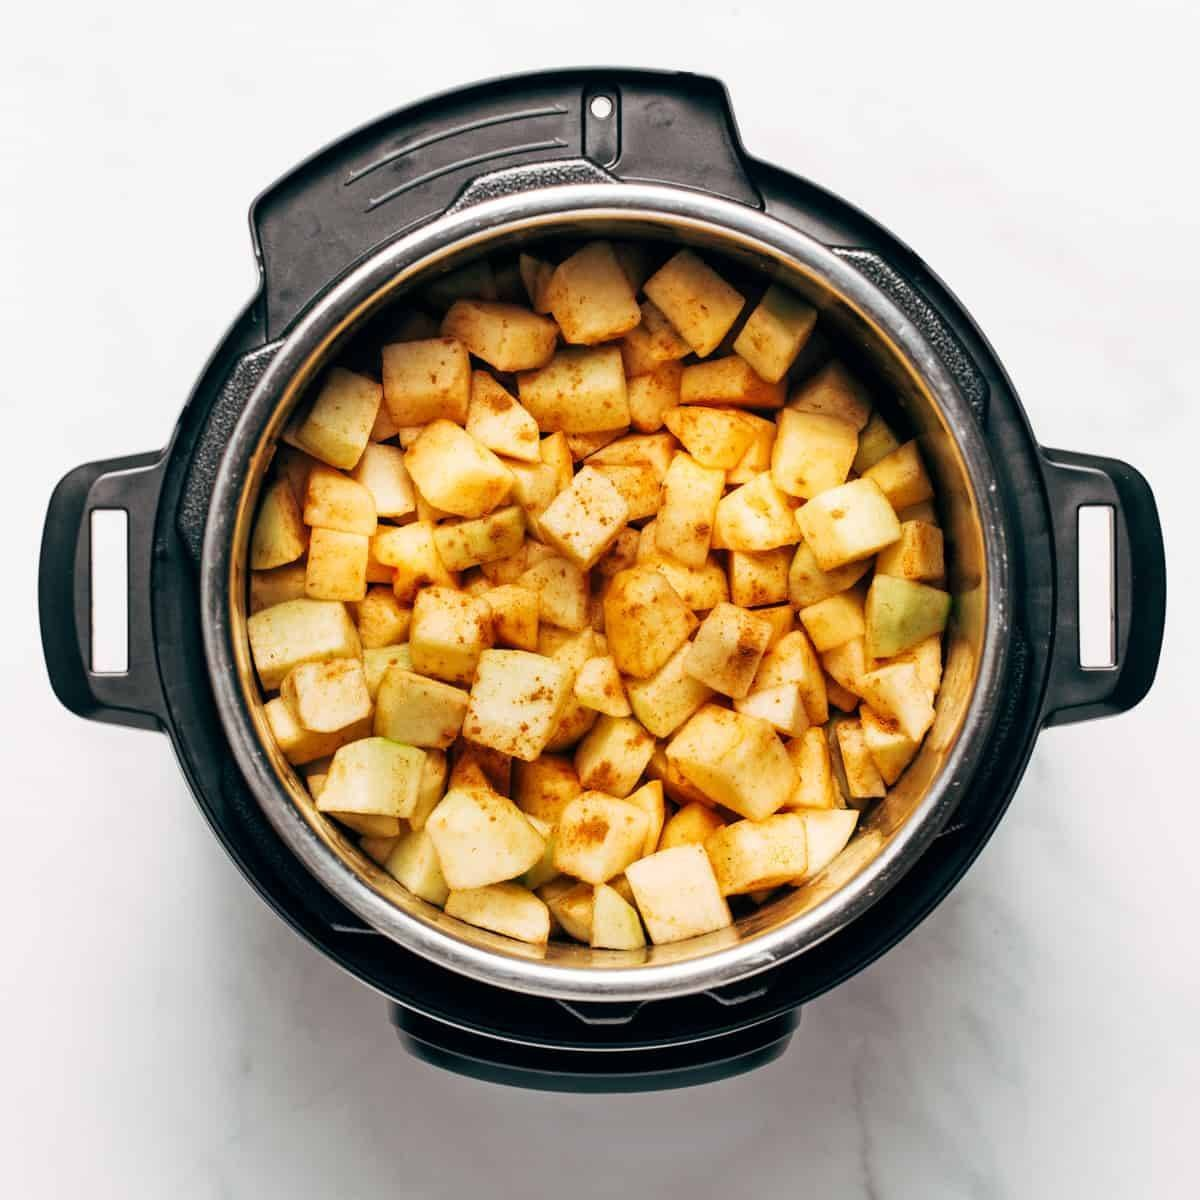 Green apples chopped and in an instant pot with spices